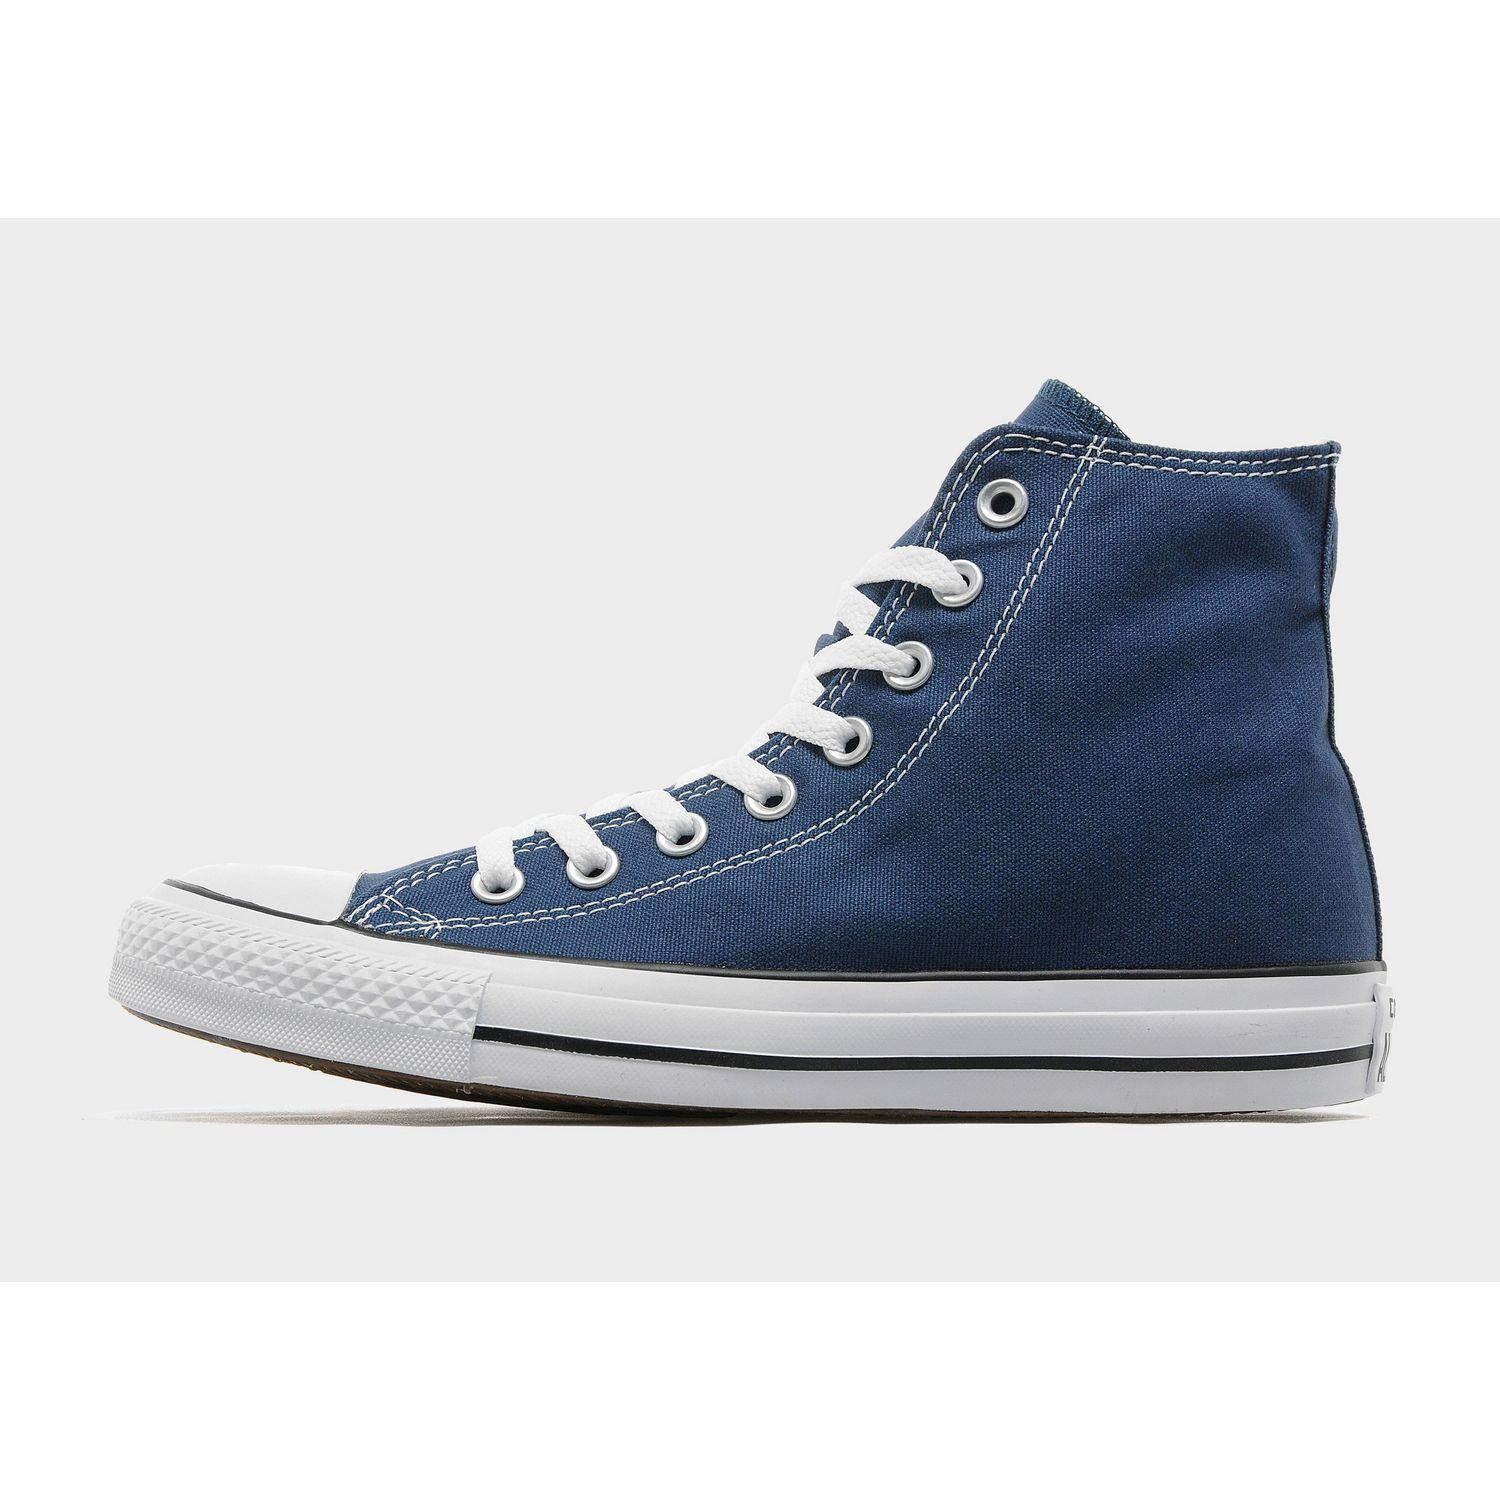 a9fd5f7a8247 Lyst - Converse Chuck Taylor All Star Hi in Blue for Men - Save 38%